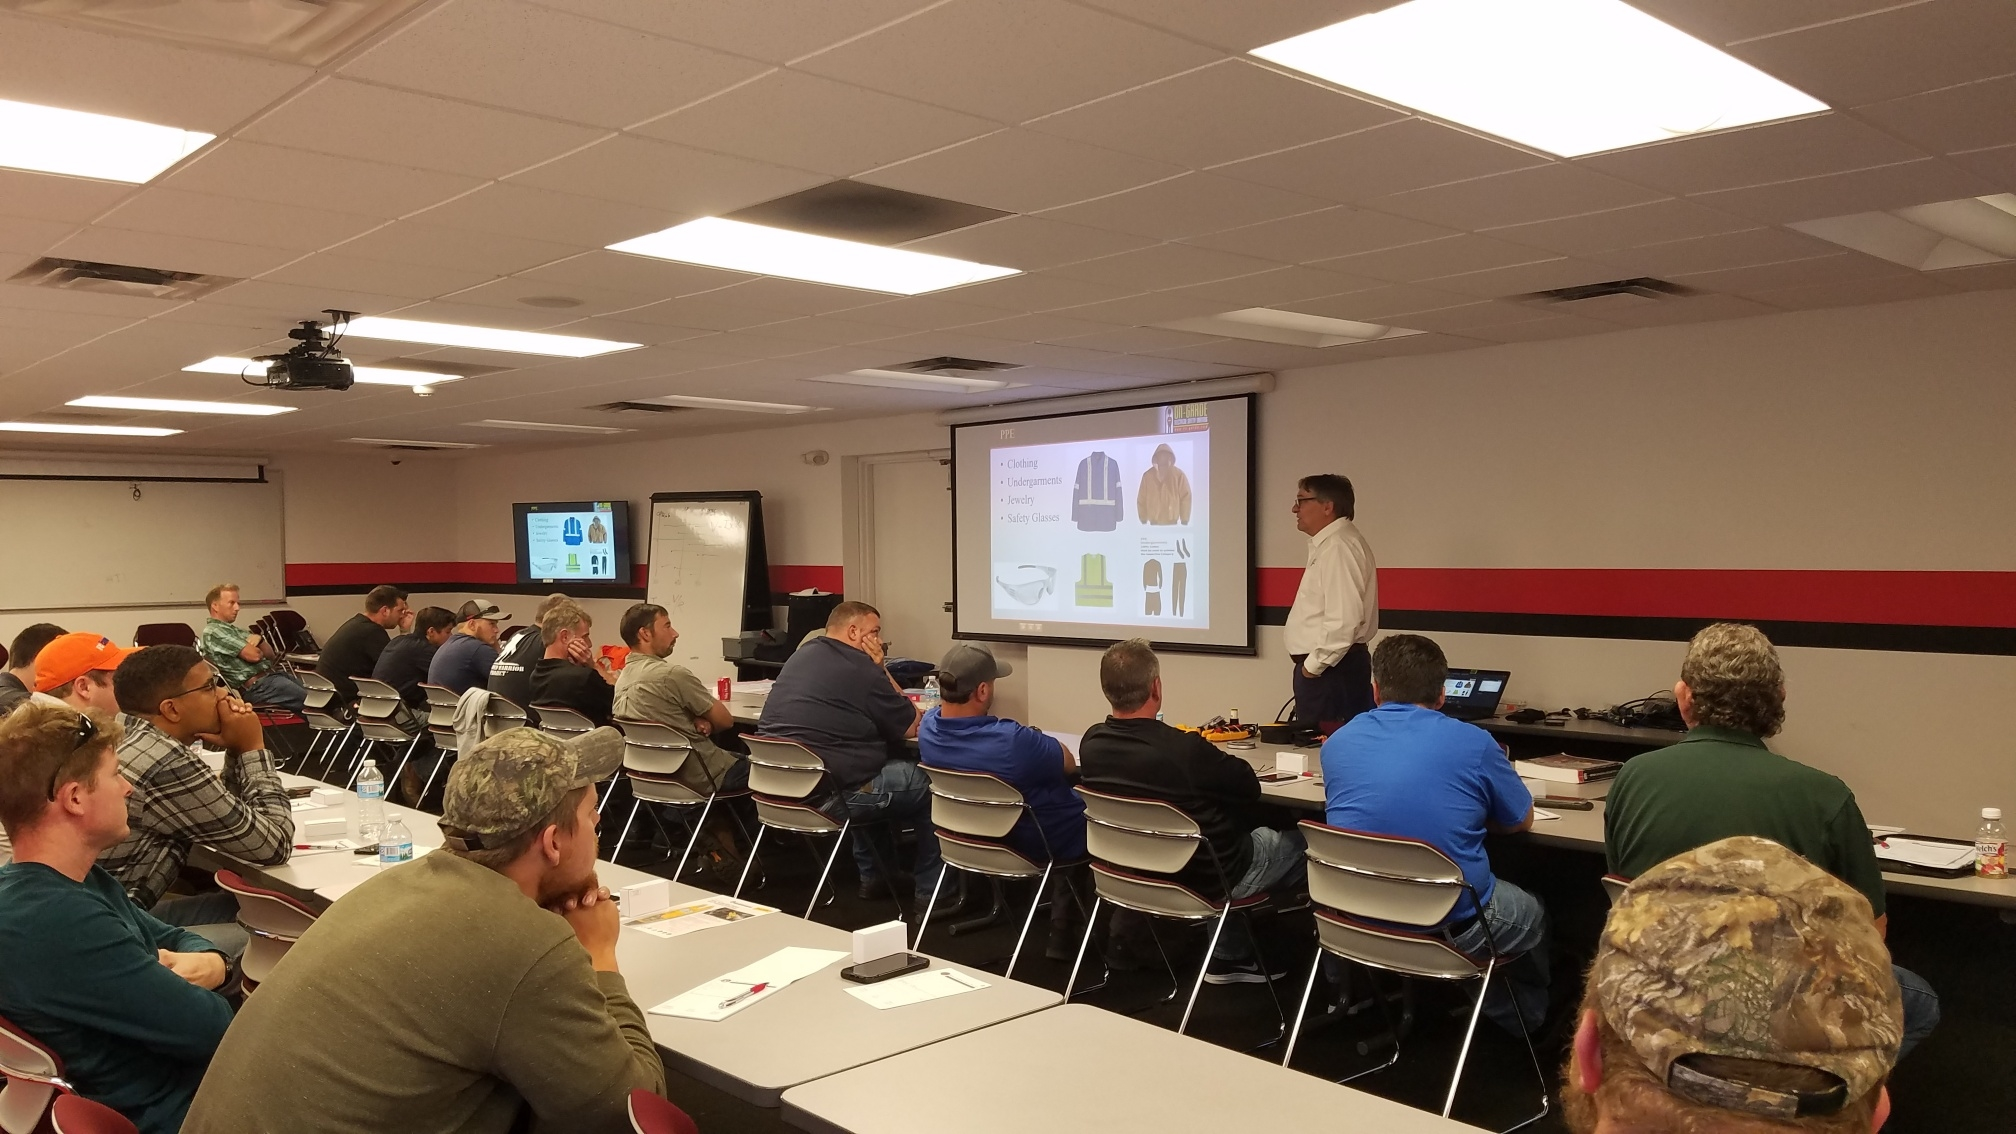 NFPA 70E Electrical Safety Training at The F.D. Lawrence Electric Co.